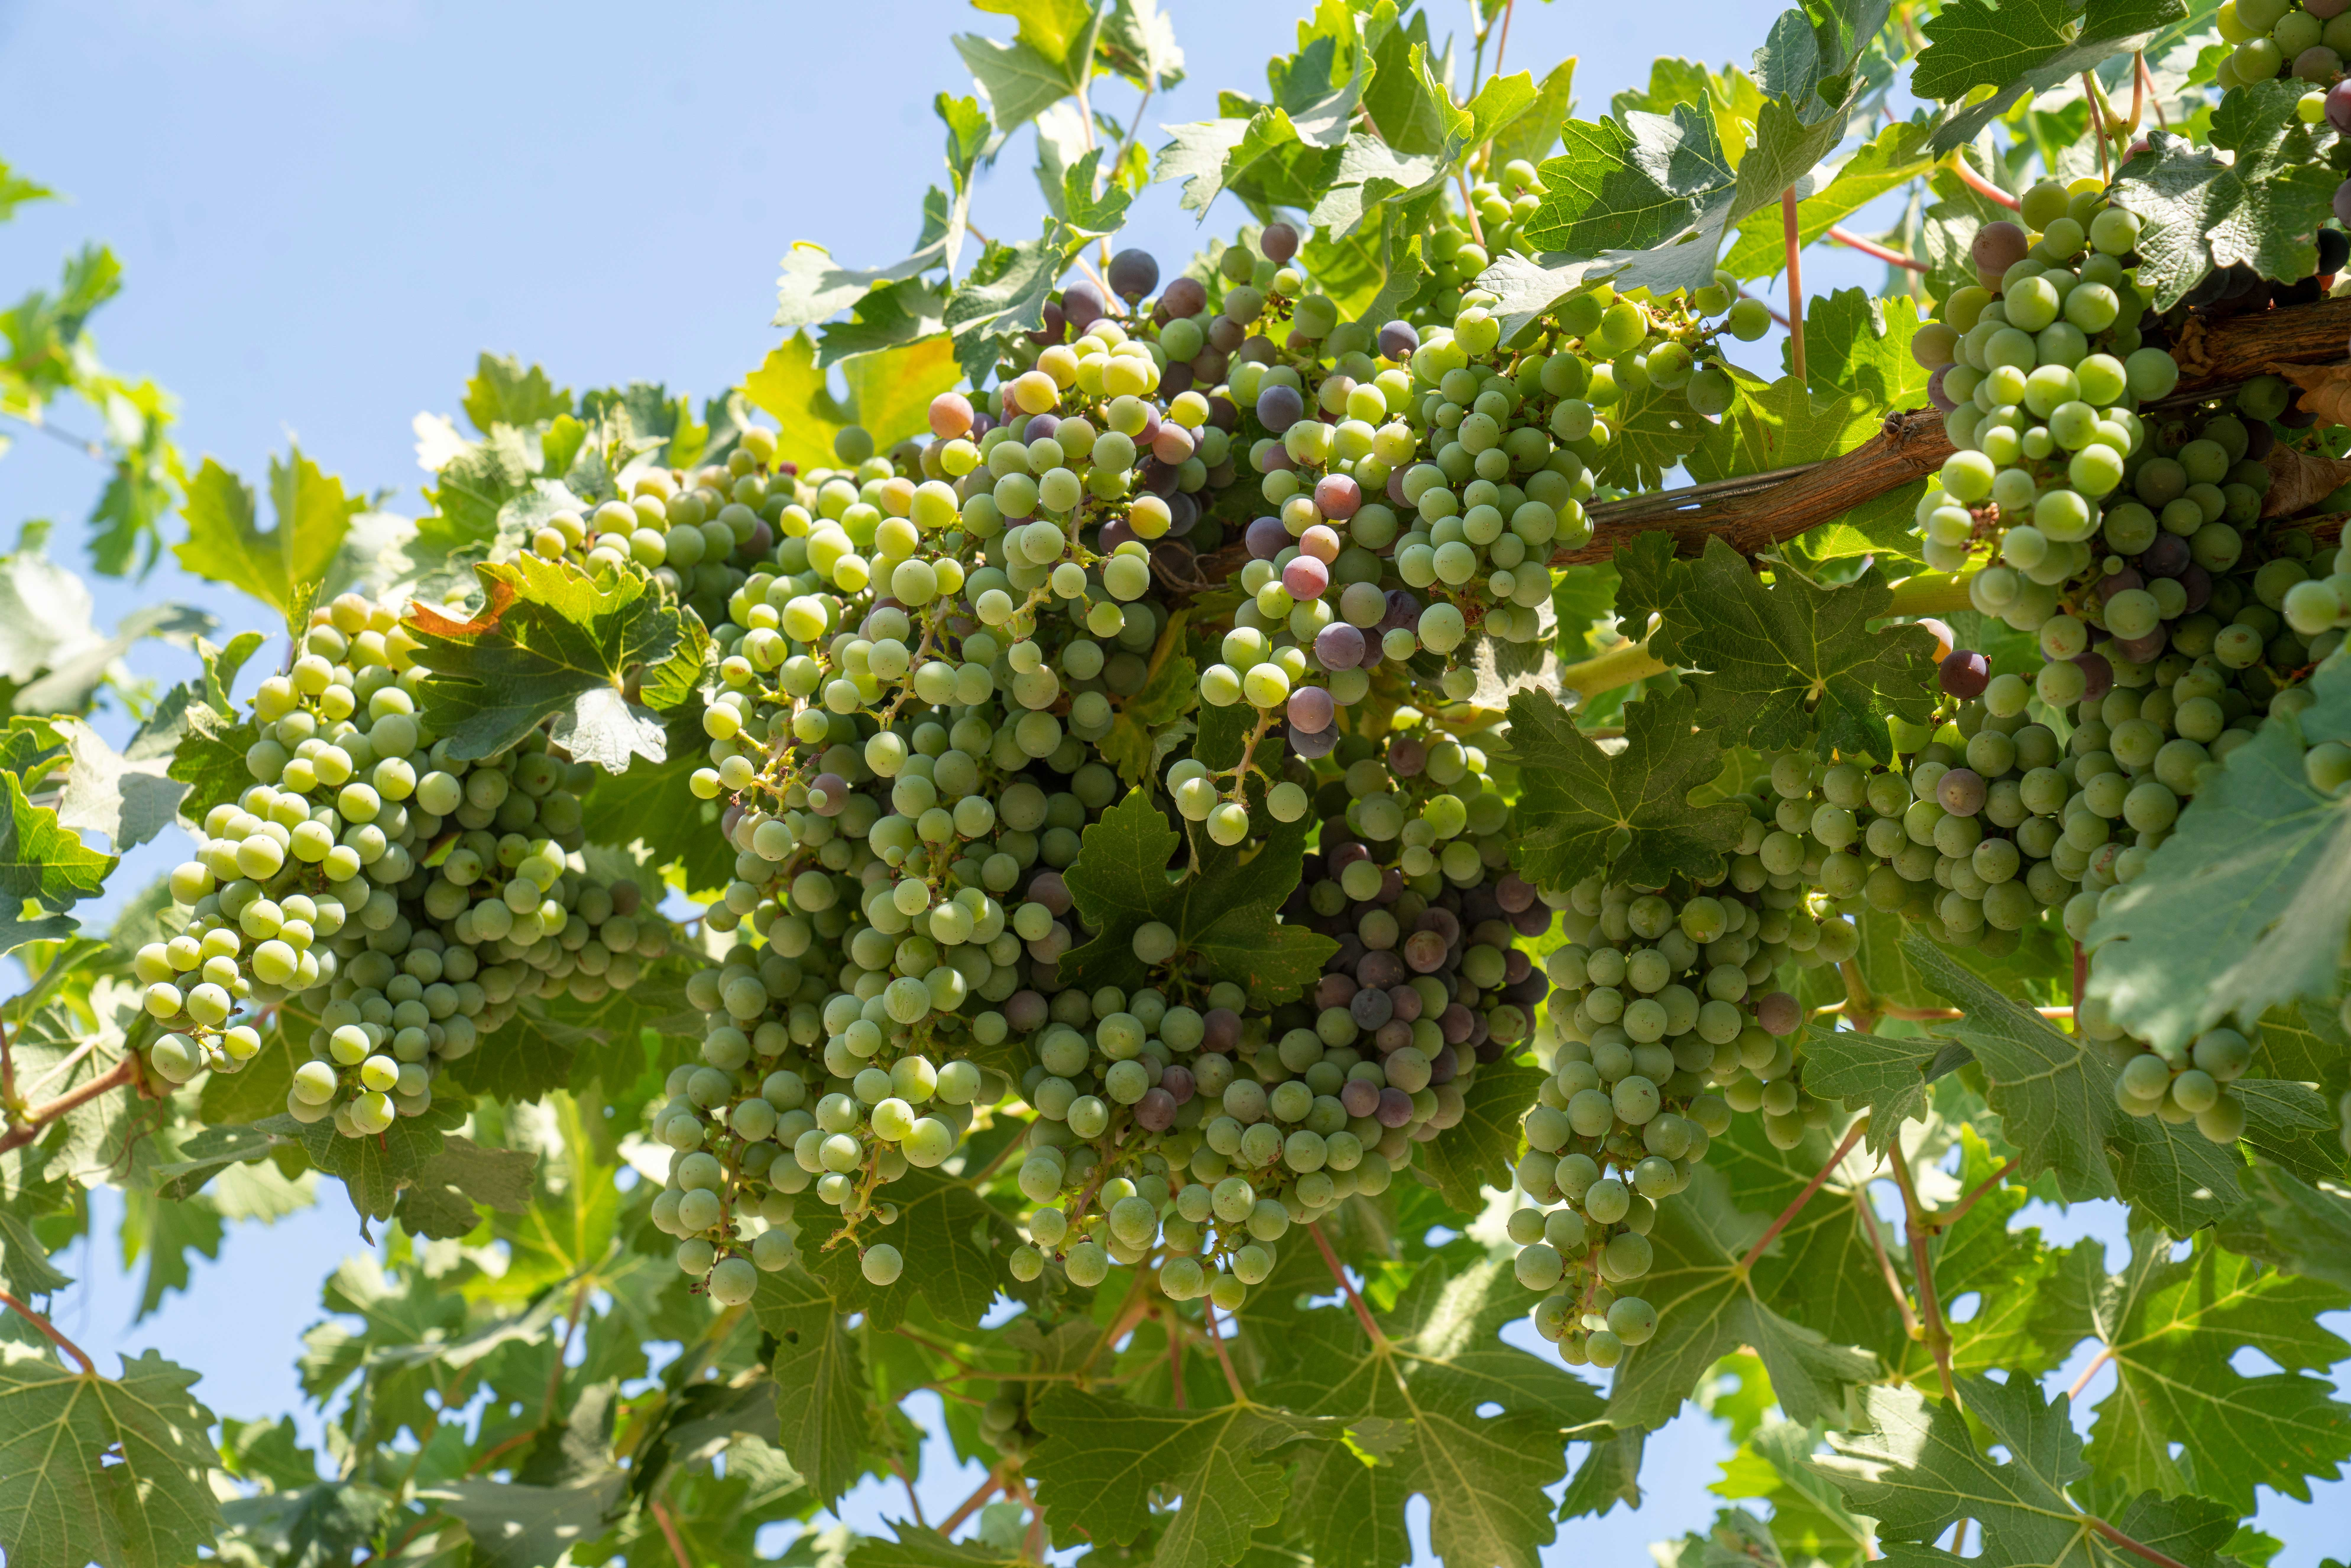 Grape vines elevated two to three feet higher than the traditional wine grape canopy.